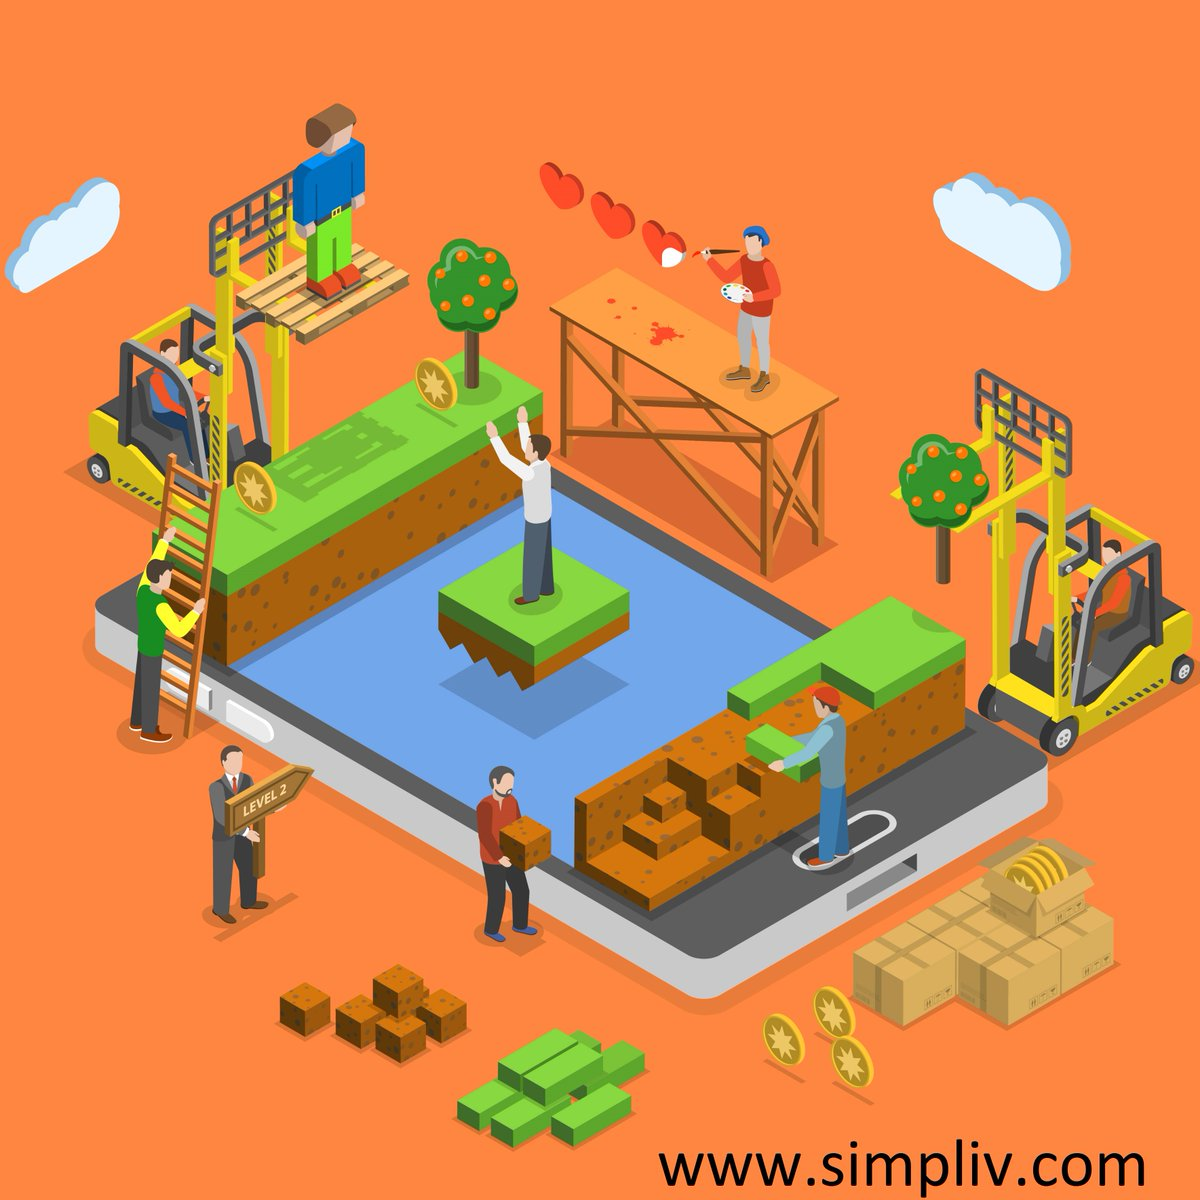 Simpliv On Twitter Top Online Tutorials To Learn Game Development Using Unity Https T Co 2rhzbyrxqy Gamedev Gamedesign Gamedevelopment Gaming Vampires Turnbased Indiedev Gamedev Indiegames Horrorgames 2dgamedevelopment Unity Cocos2d